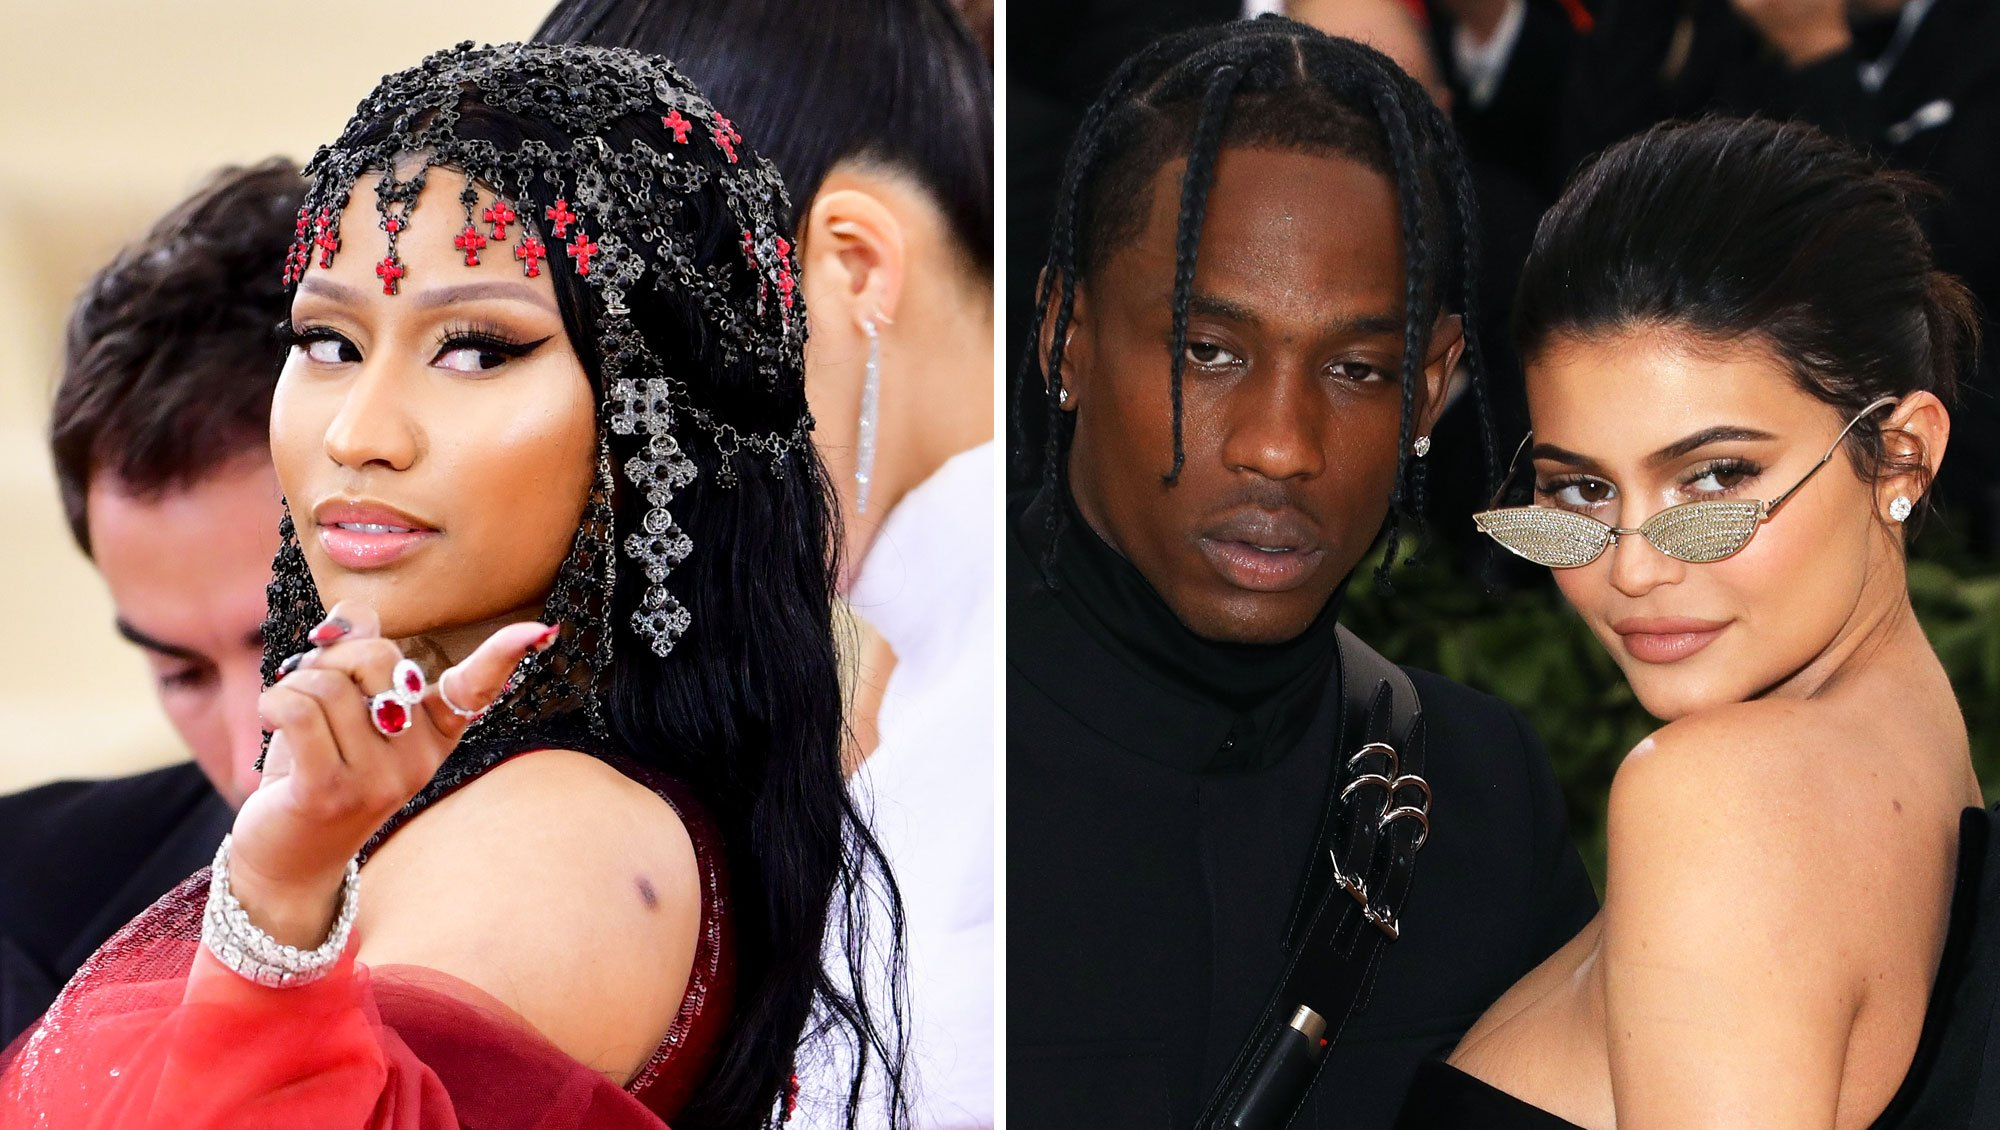 Nicki Minaj, Travis Scott and Kylie Jenner